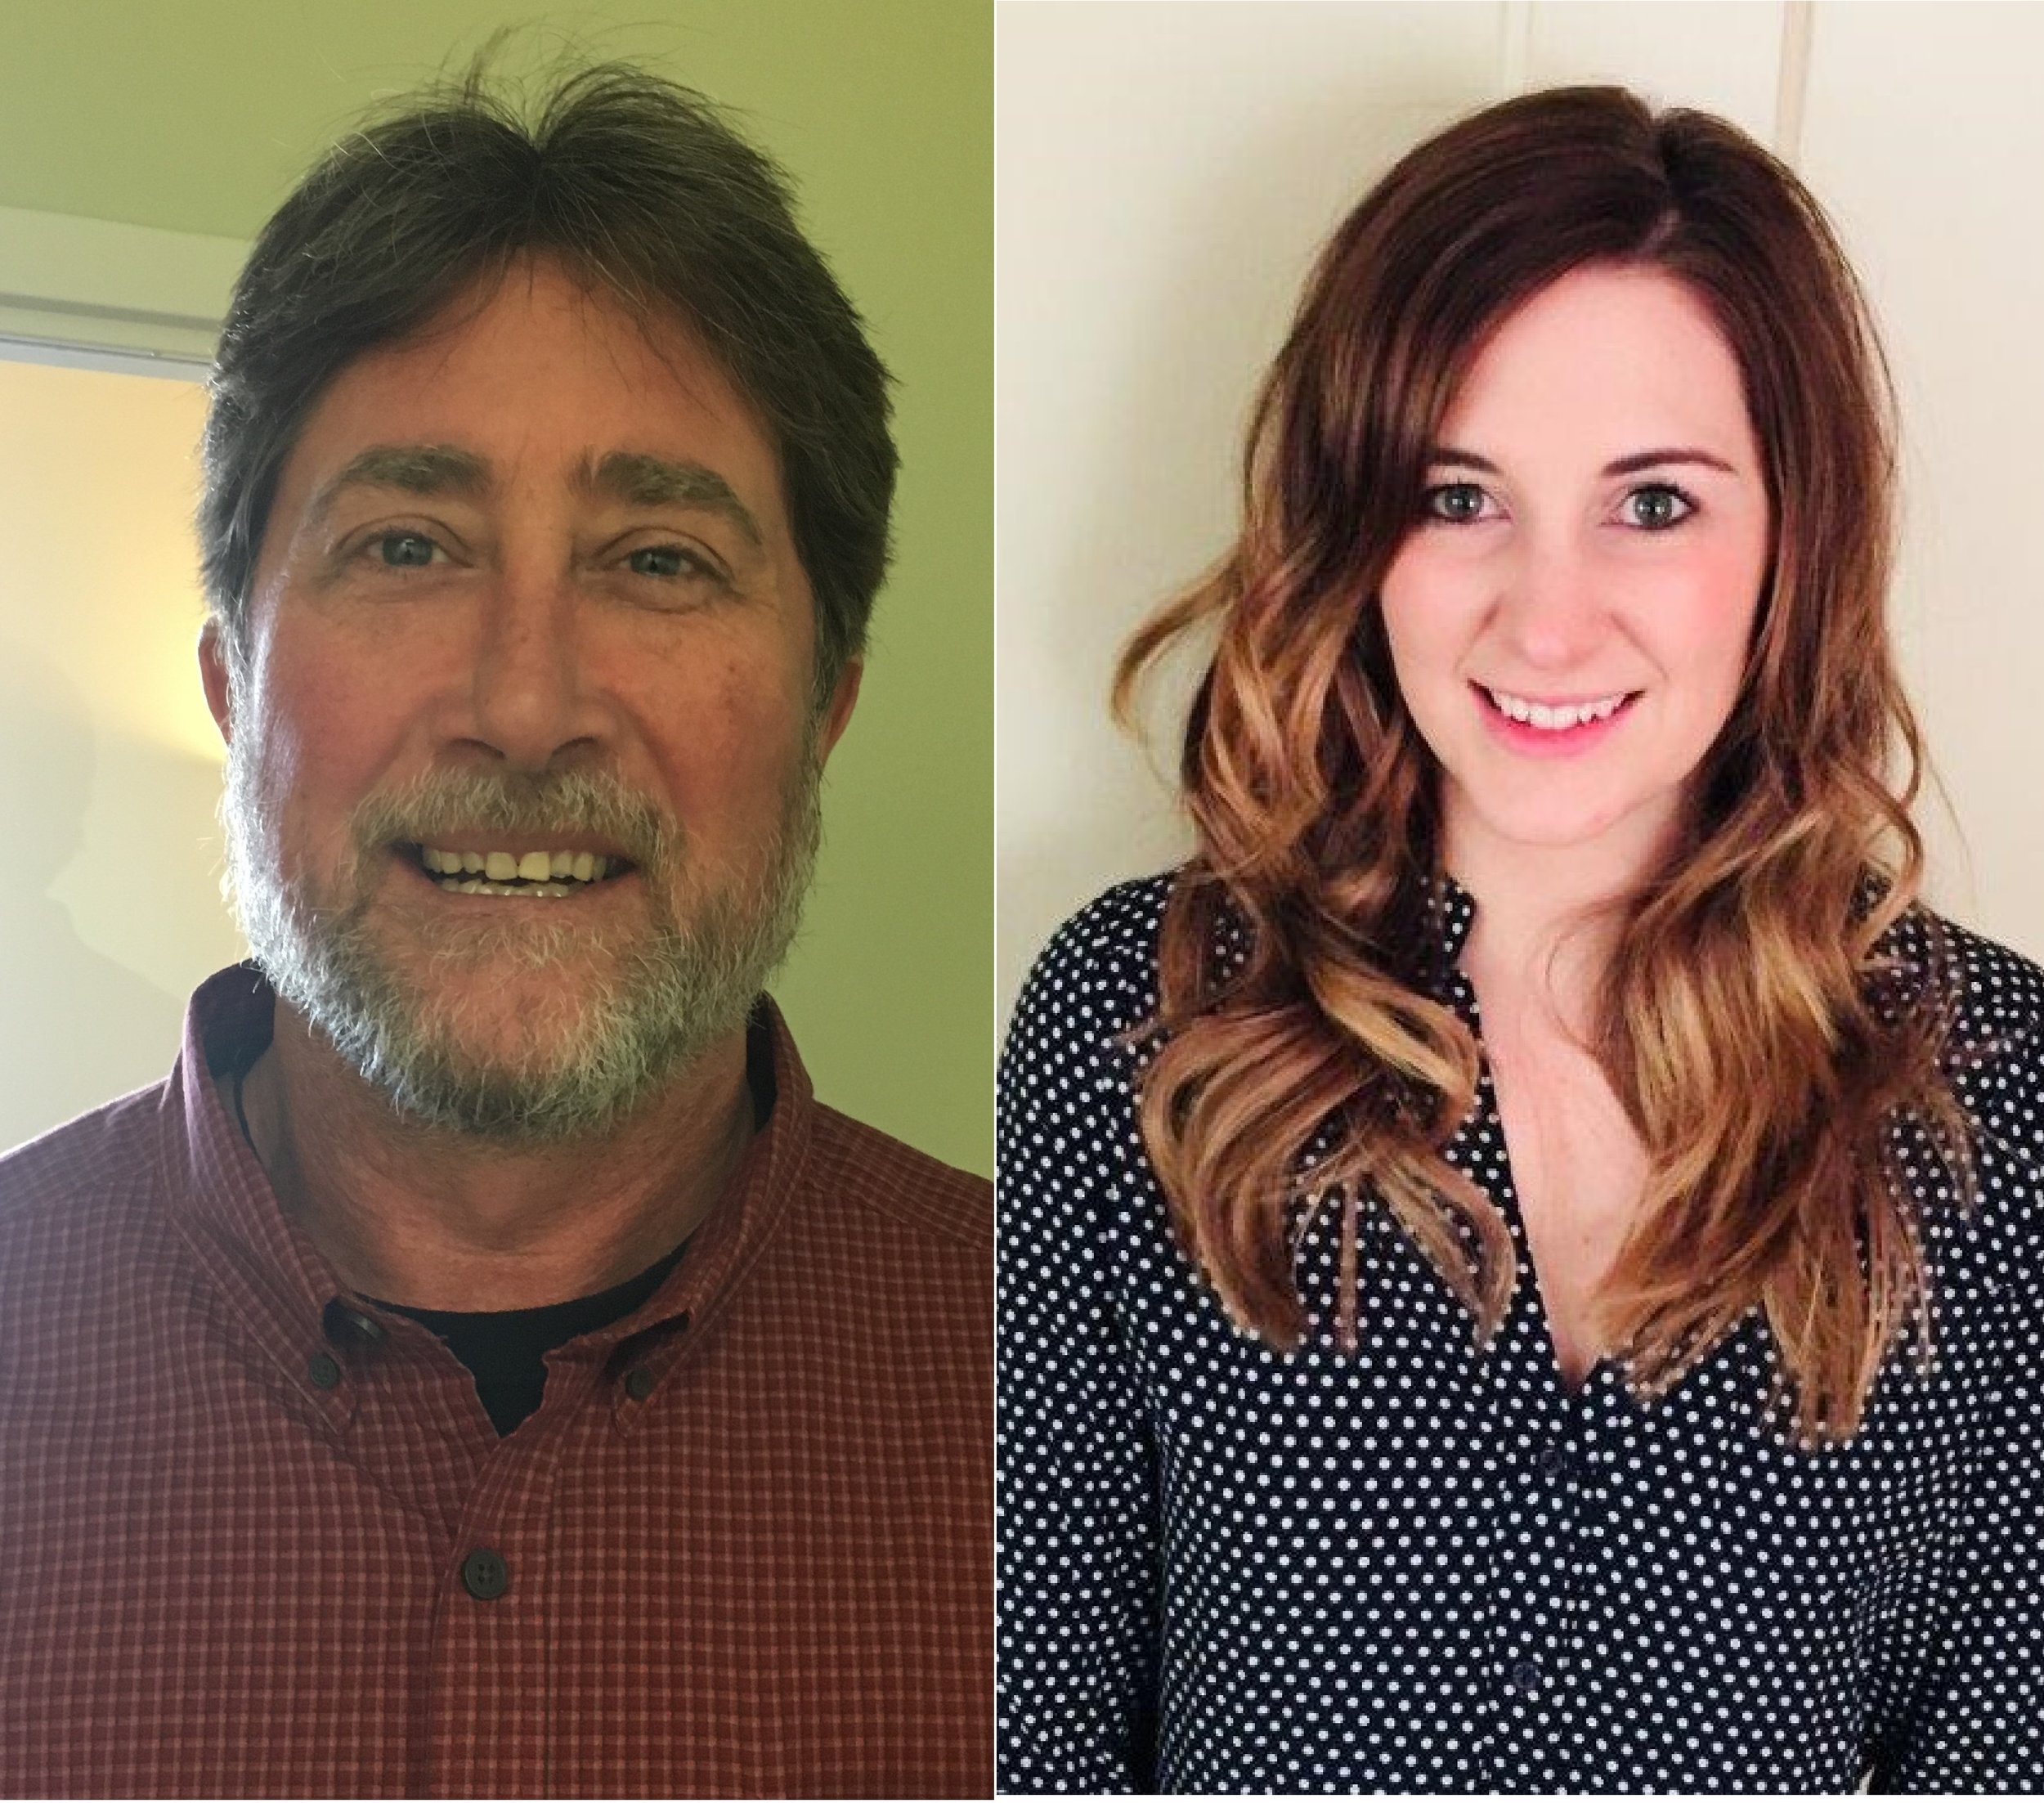 In April we welcomed 2 new board members: Steve Peterson and Heidi Young!